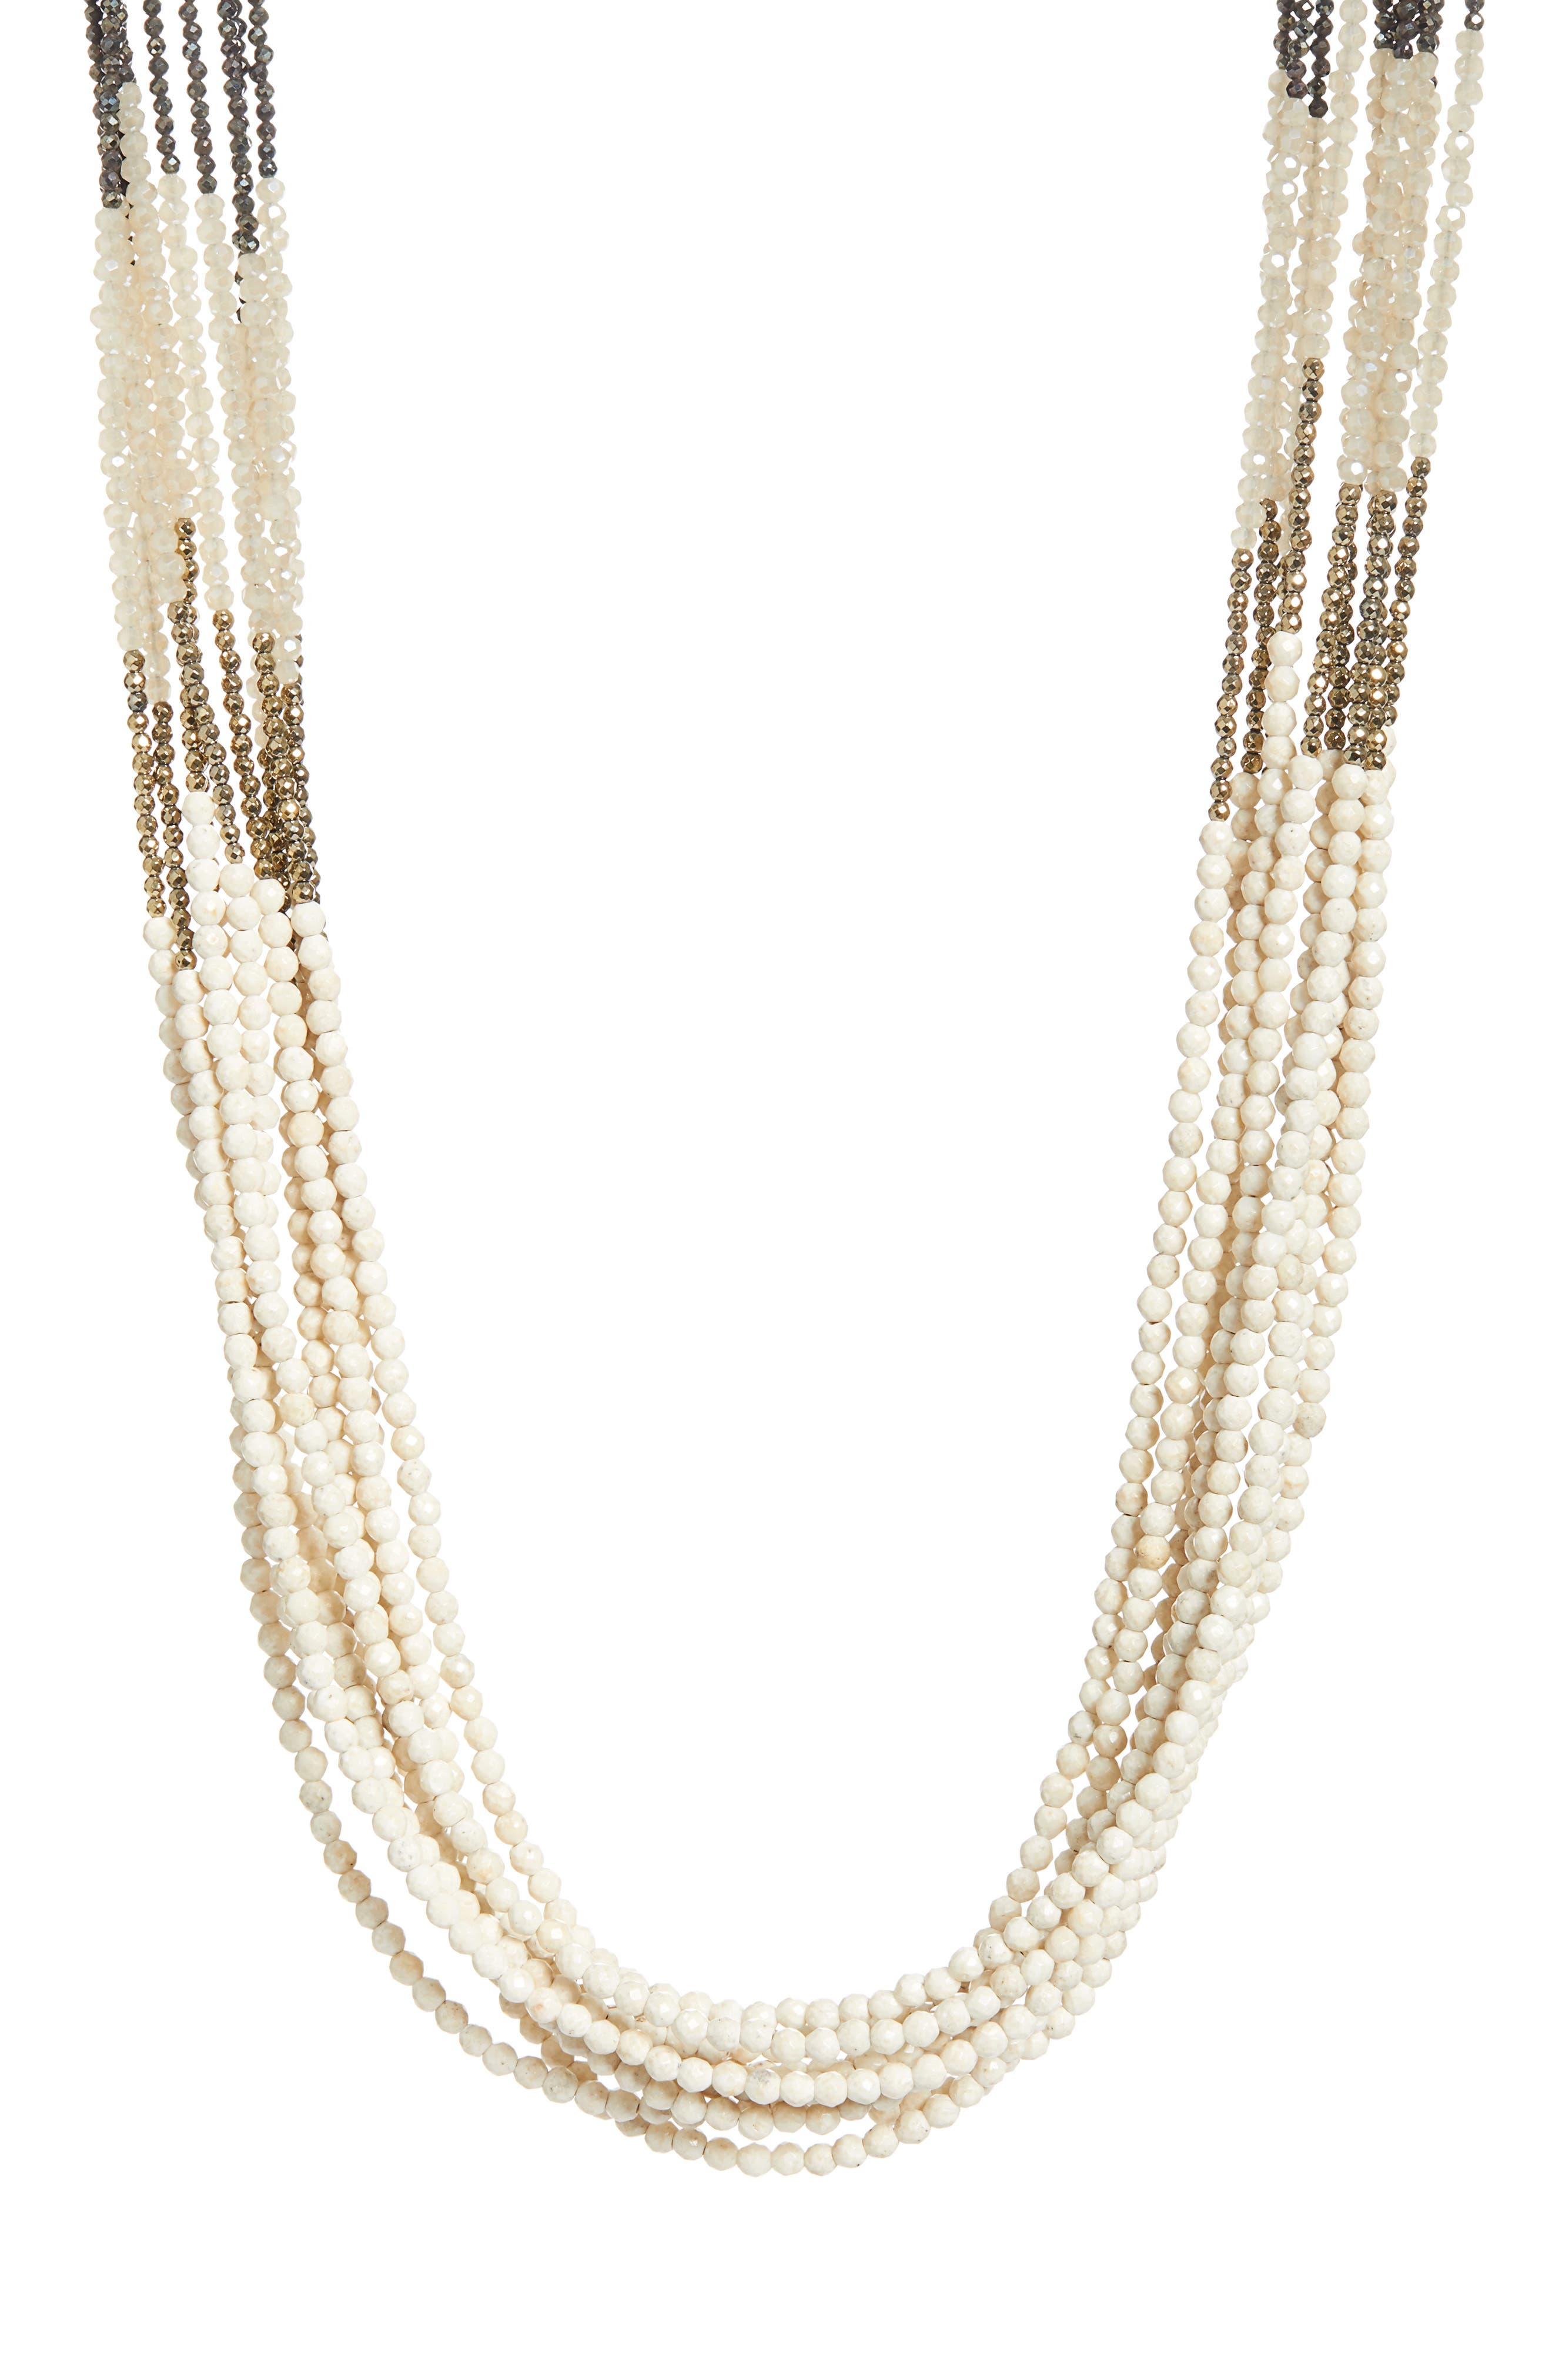 BRUNELLO CUCINELLI Beaded Multistrand Necklace, Main, color, BROWN